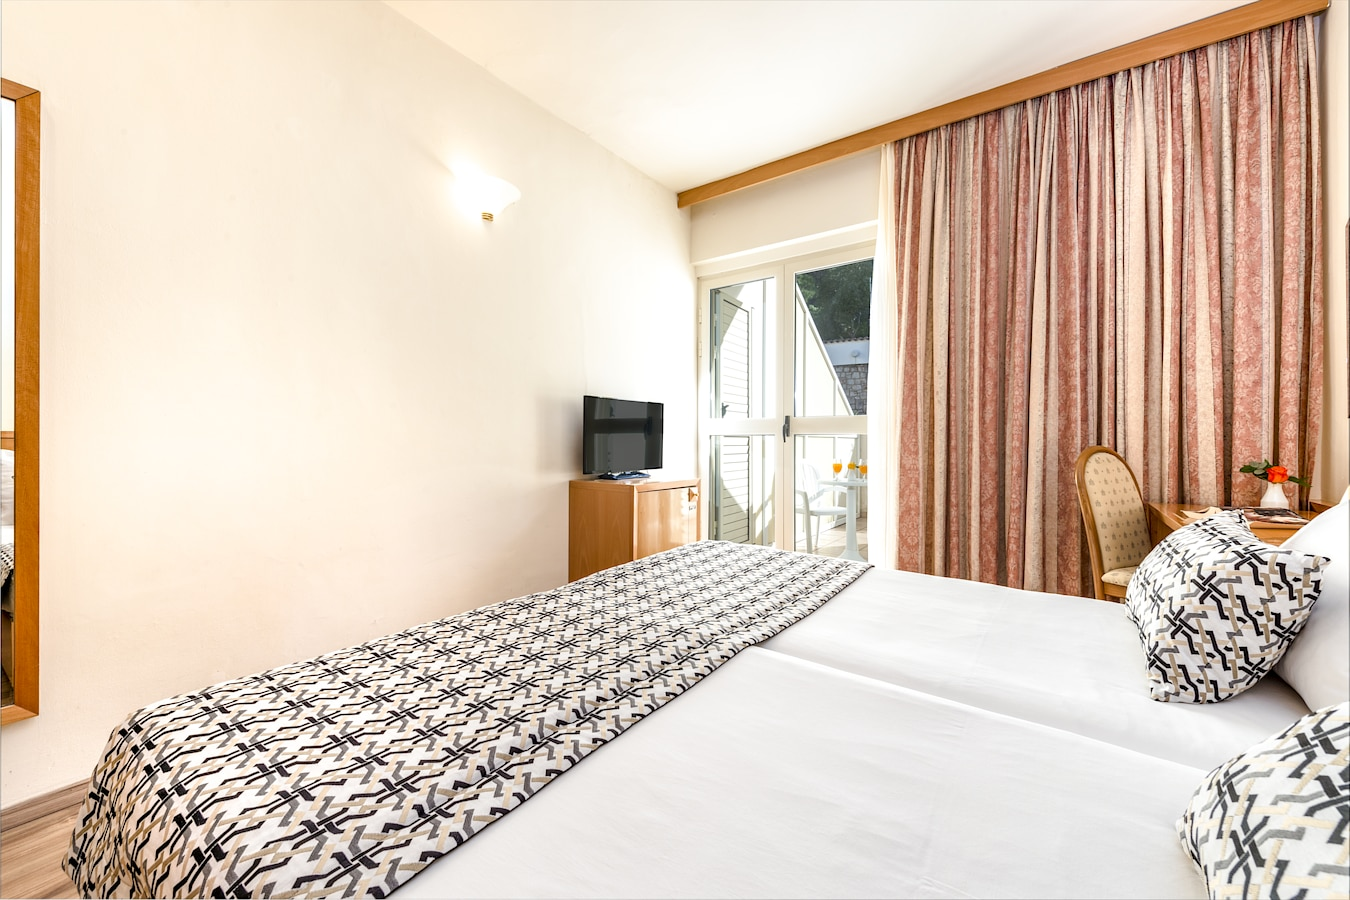 splendid-hotel-double-room-dubrovnik-balcony.jpg